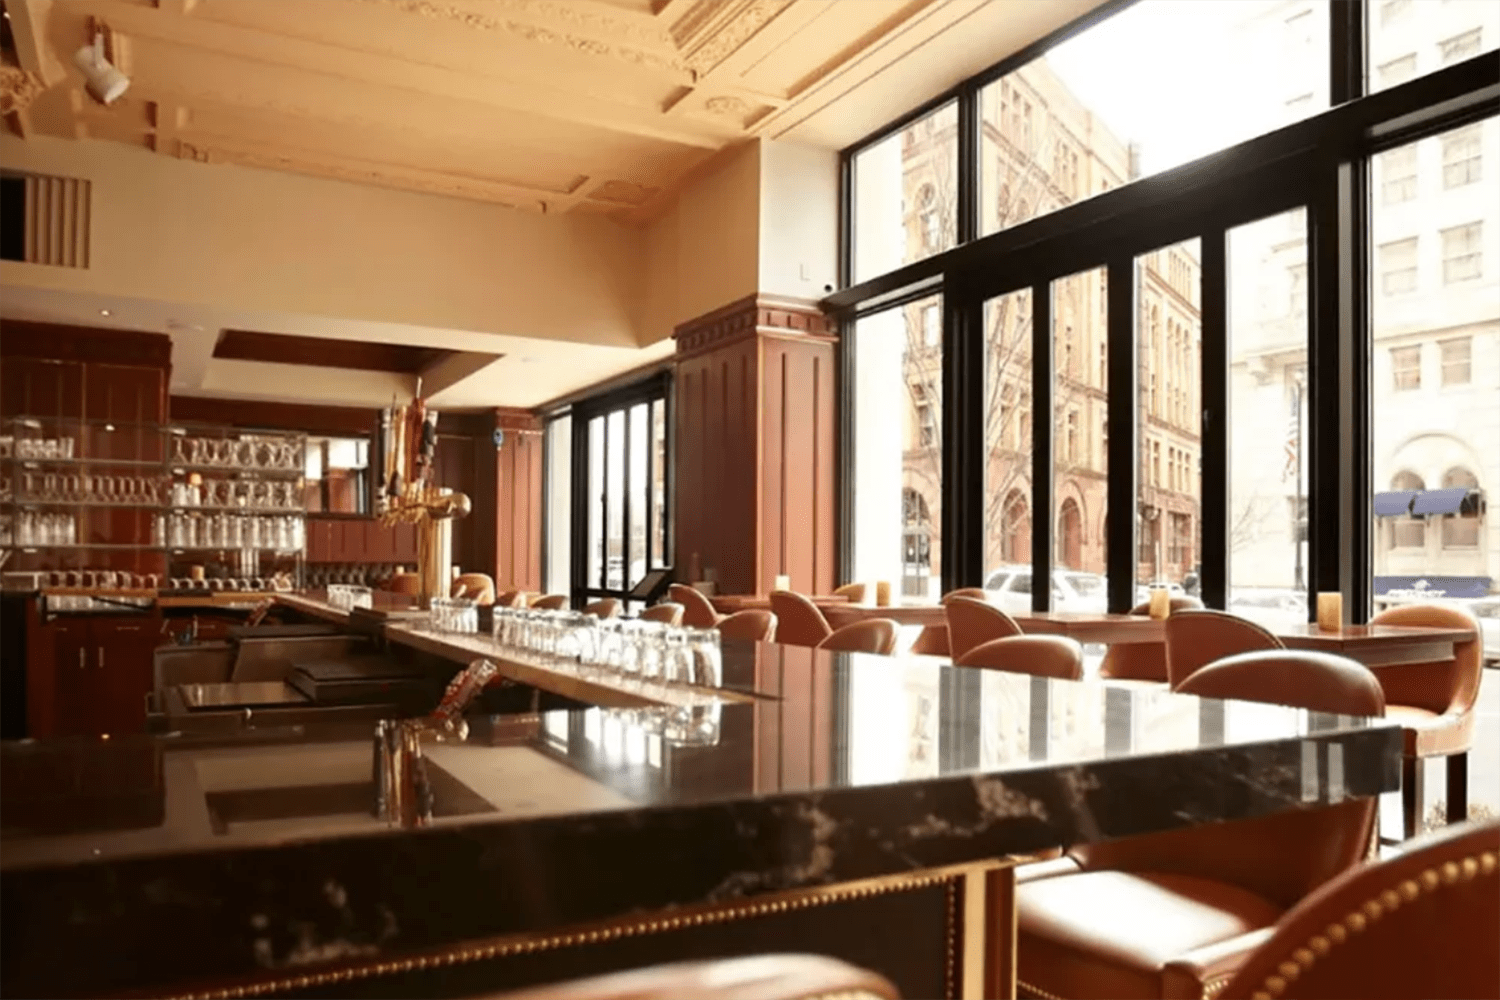 An inside look at the bar at Grill 23 & Bar in Boston